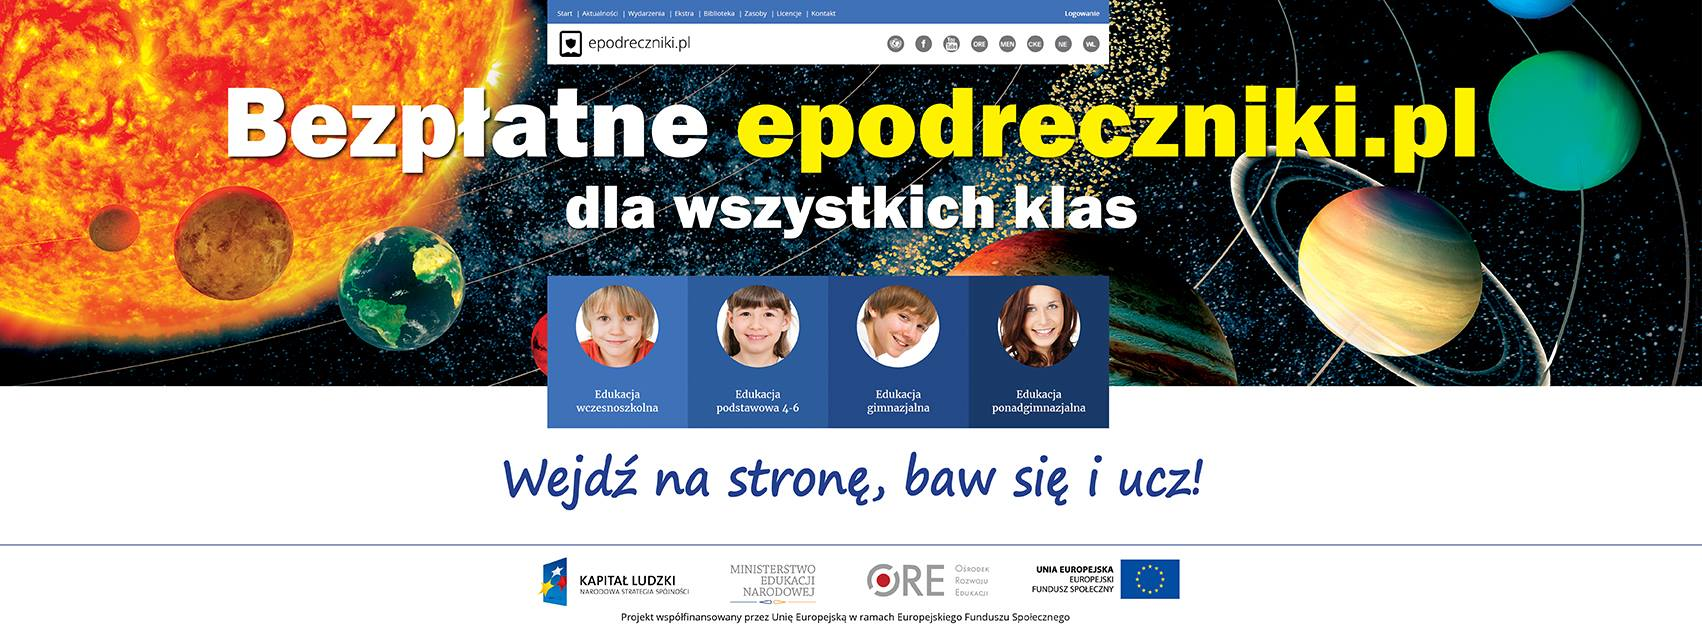 https://www.epodreczniki.pl/begin/